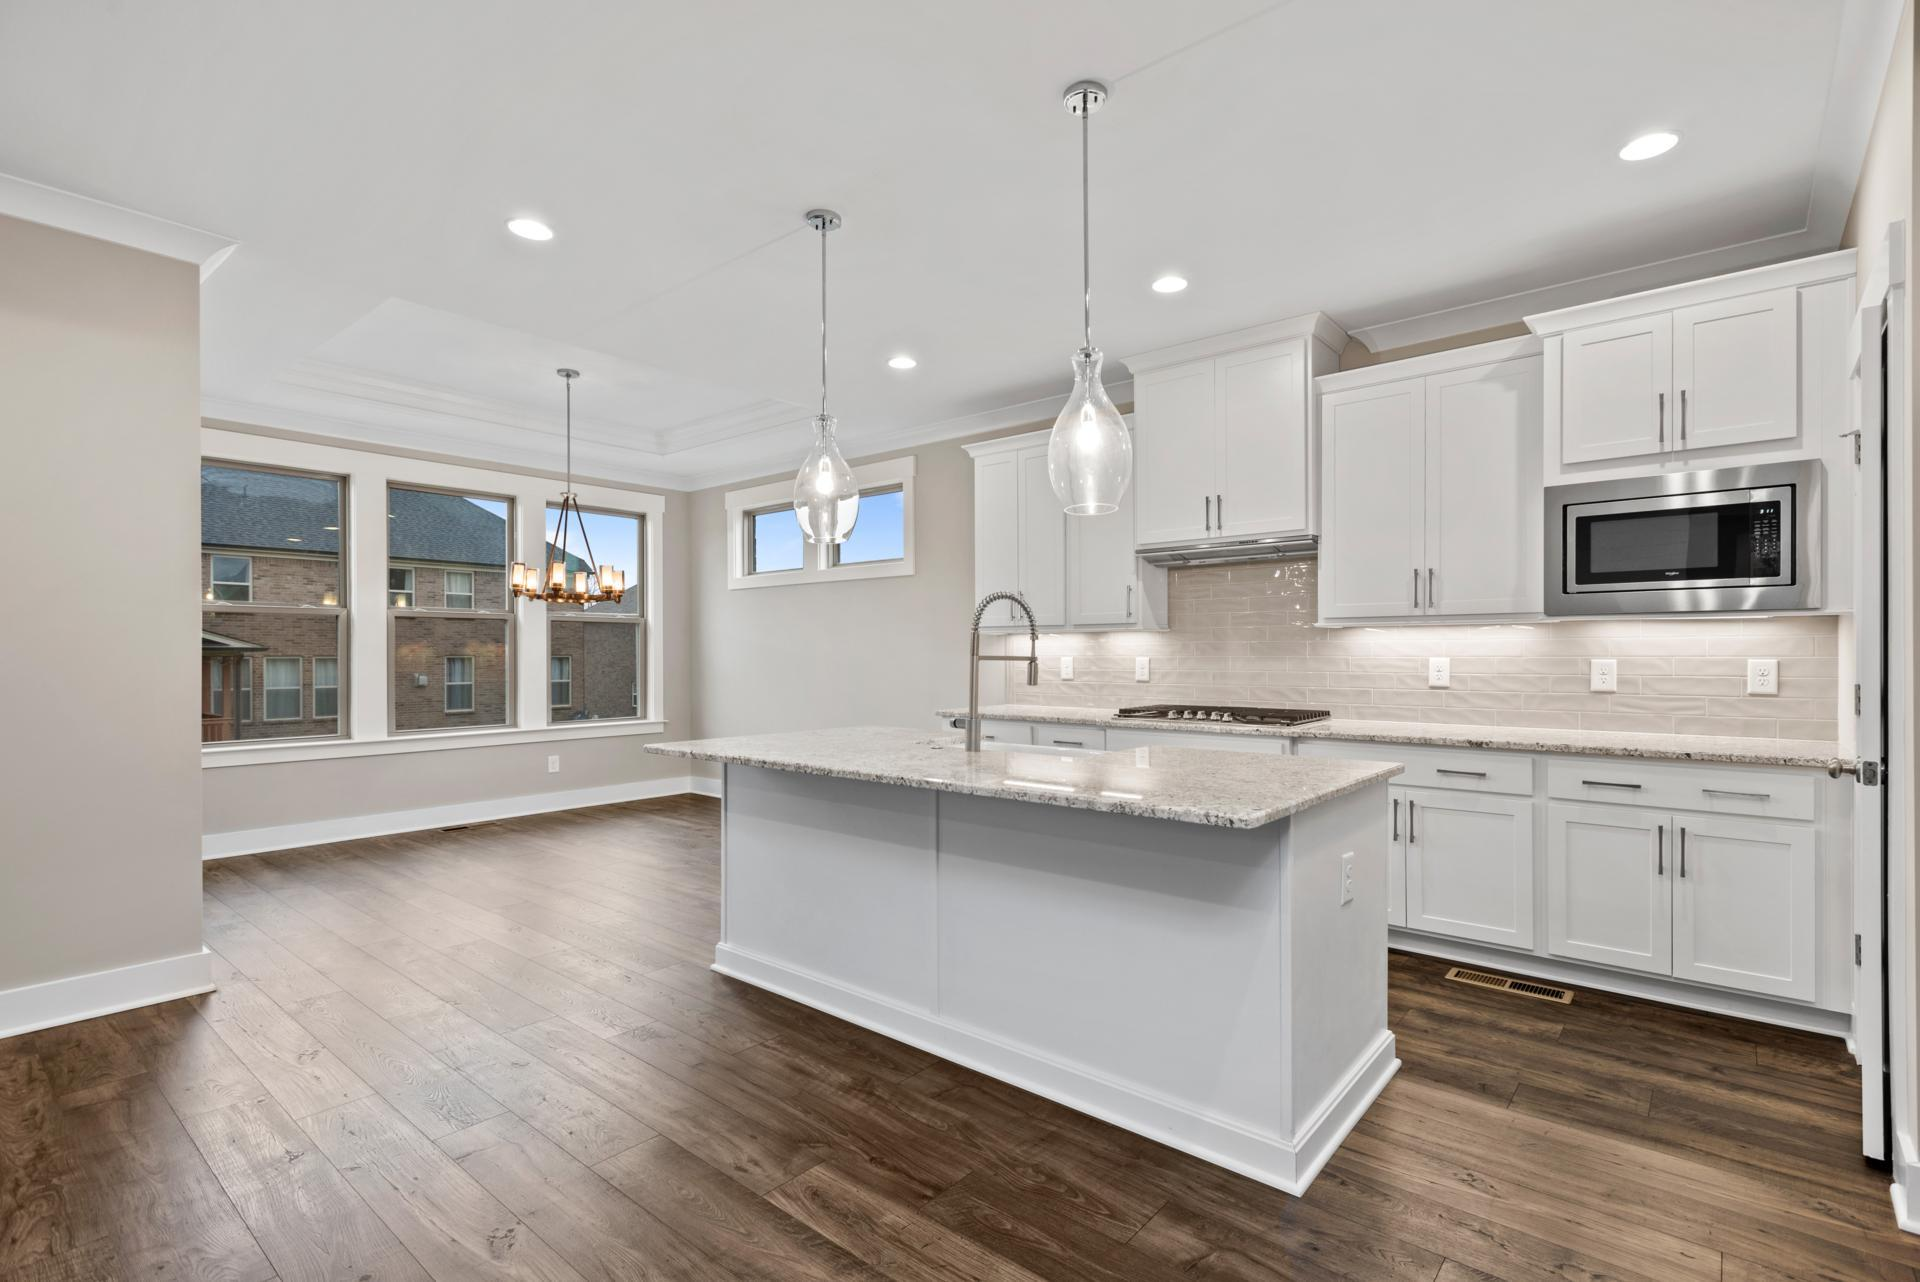 Kitchen featured in the Marshall By Drees Homes in Nashville, TN